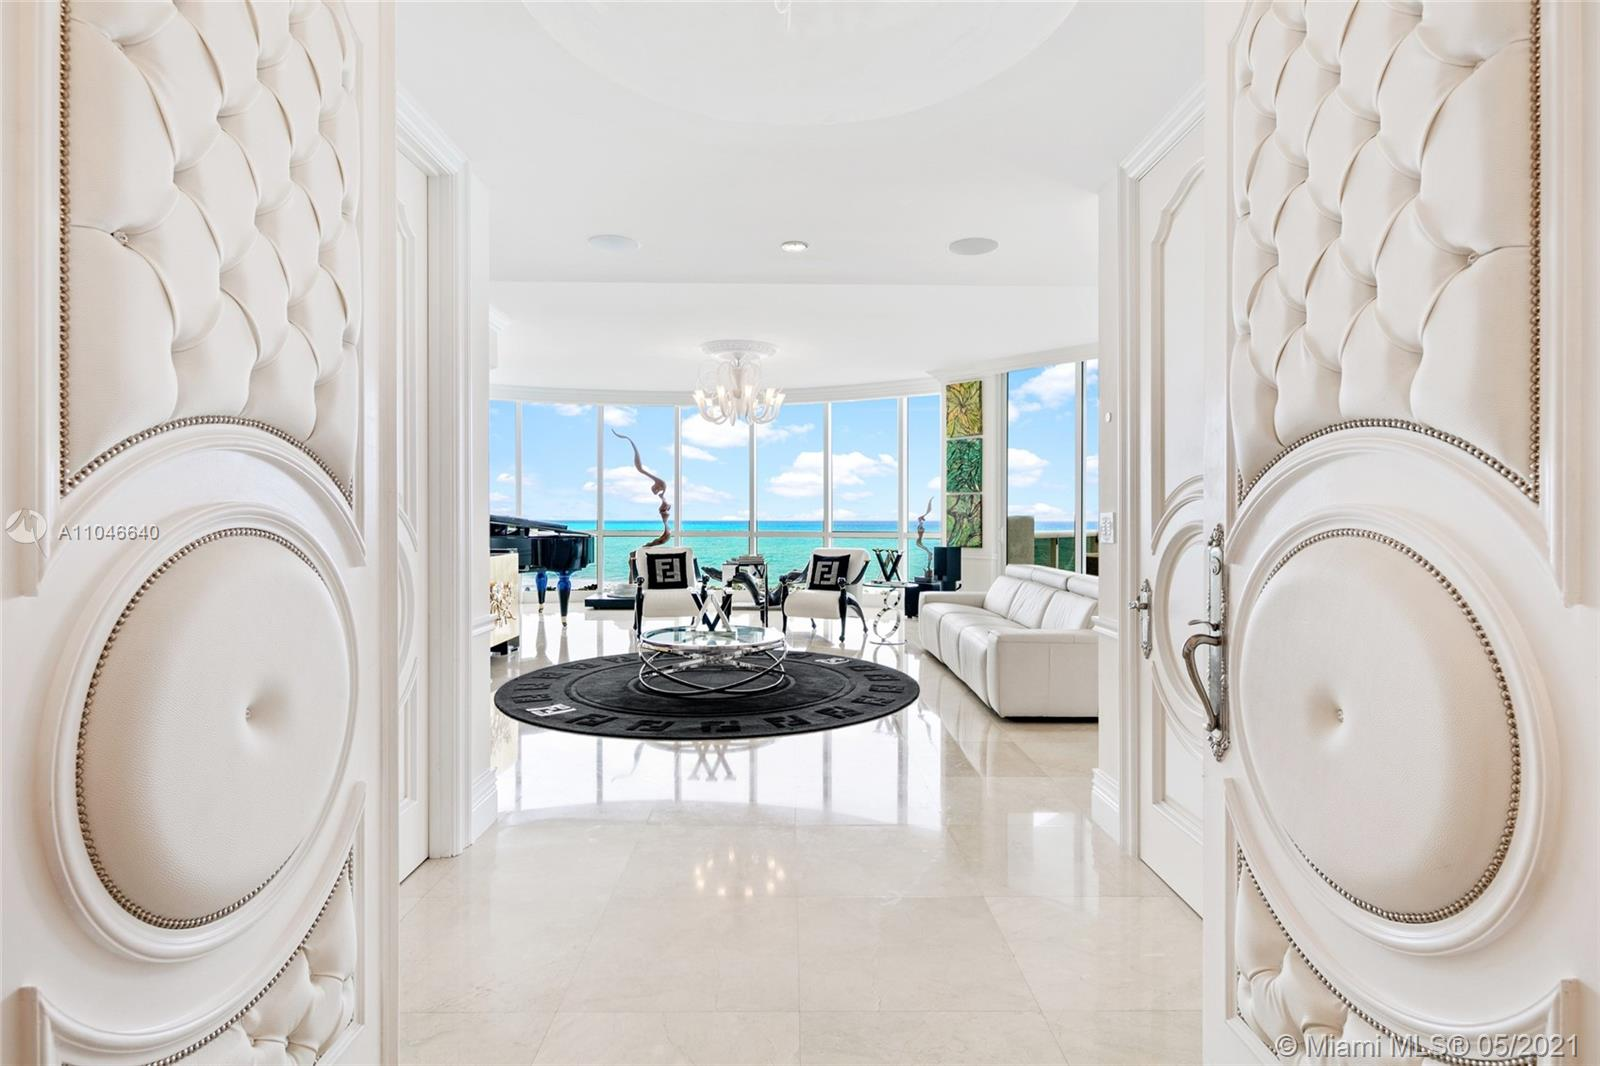 Live in luxury at Trump Palace in this one of a kind oversized residence consisting of two combined units in the line 07 and 09. This unit offers 5 bedroom 4.5 baths with infinite views of Miami's turquoise ocean and miles of beaches from the 3 expansive terraces. Private elevator professionally designed & decorated: Murano Glass Chandeliers with Swarovski Crystals. Bright open kitchen boasts Miele, Wolf and Sub Zero Appliances. The luxurious master suite features huge walk-in closets, and rare, exotic tiled shower and tub enclosure. Crestron Home Control System. Resort Style Living oceanfront with beach services, on a pristine beach with pools, jacuzzis, Restaurant on the beach, Tennis courts, Dog Pavilion, Spa & Gym, all the unique amenities from Trump Grande Resort, and much more.